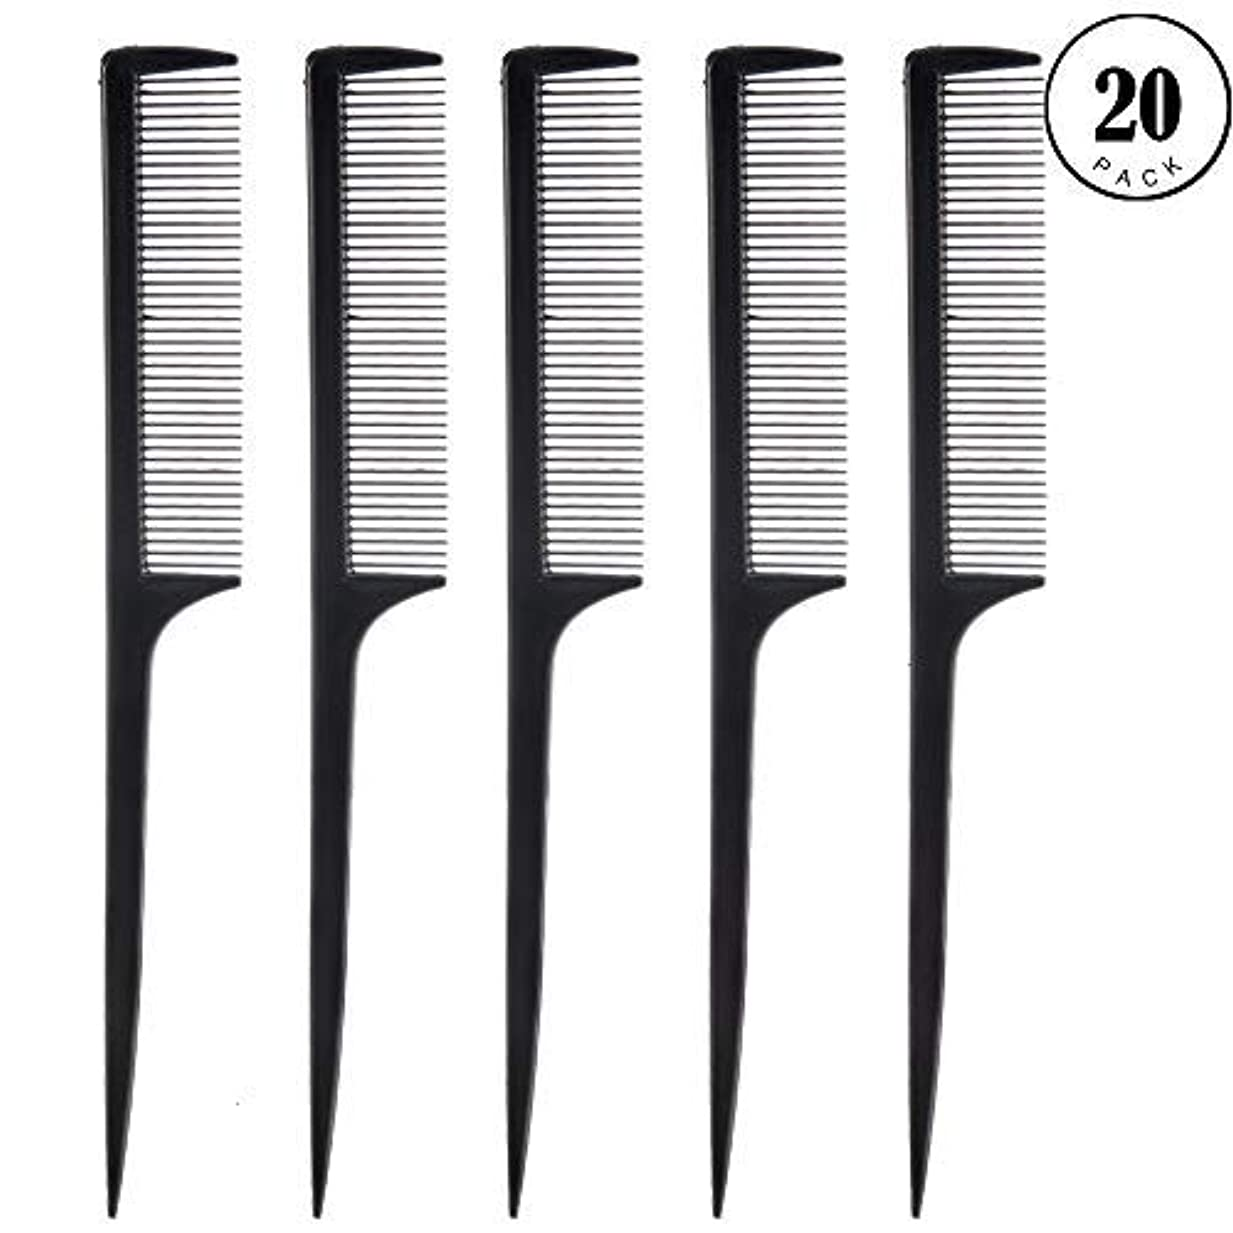 一節ダム発見Feeko Comb, 20 Pieces 21CM Plastic Lightweight Rat Tail Comb All Hair Types Black [並行輸入品]